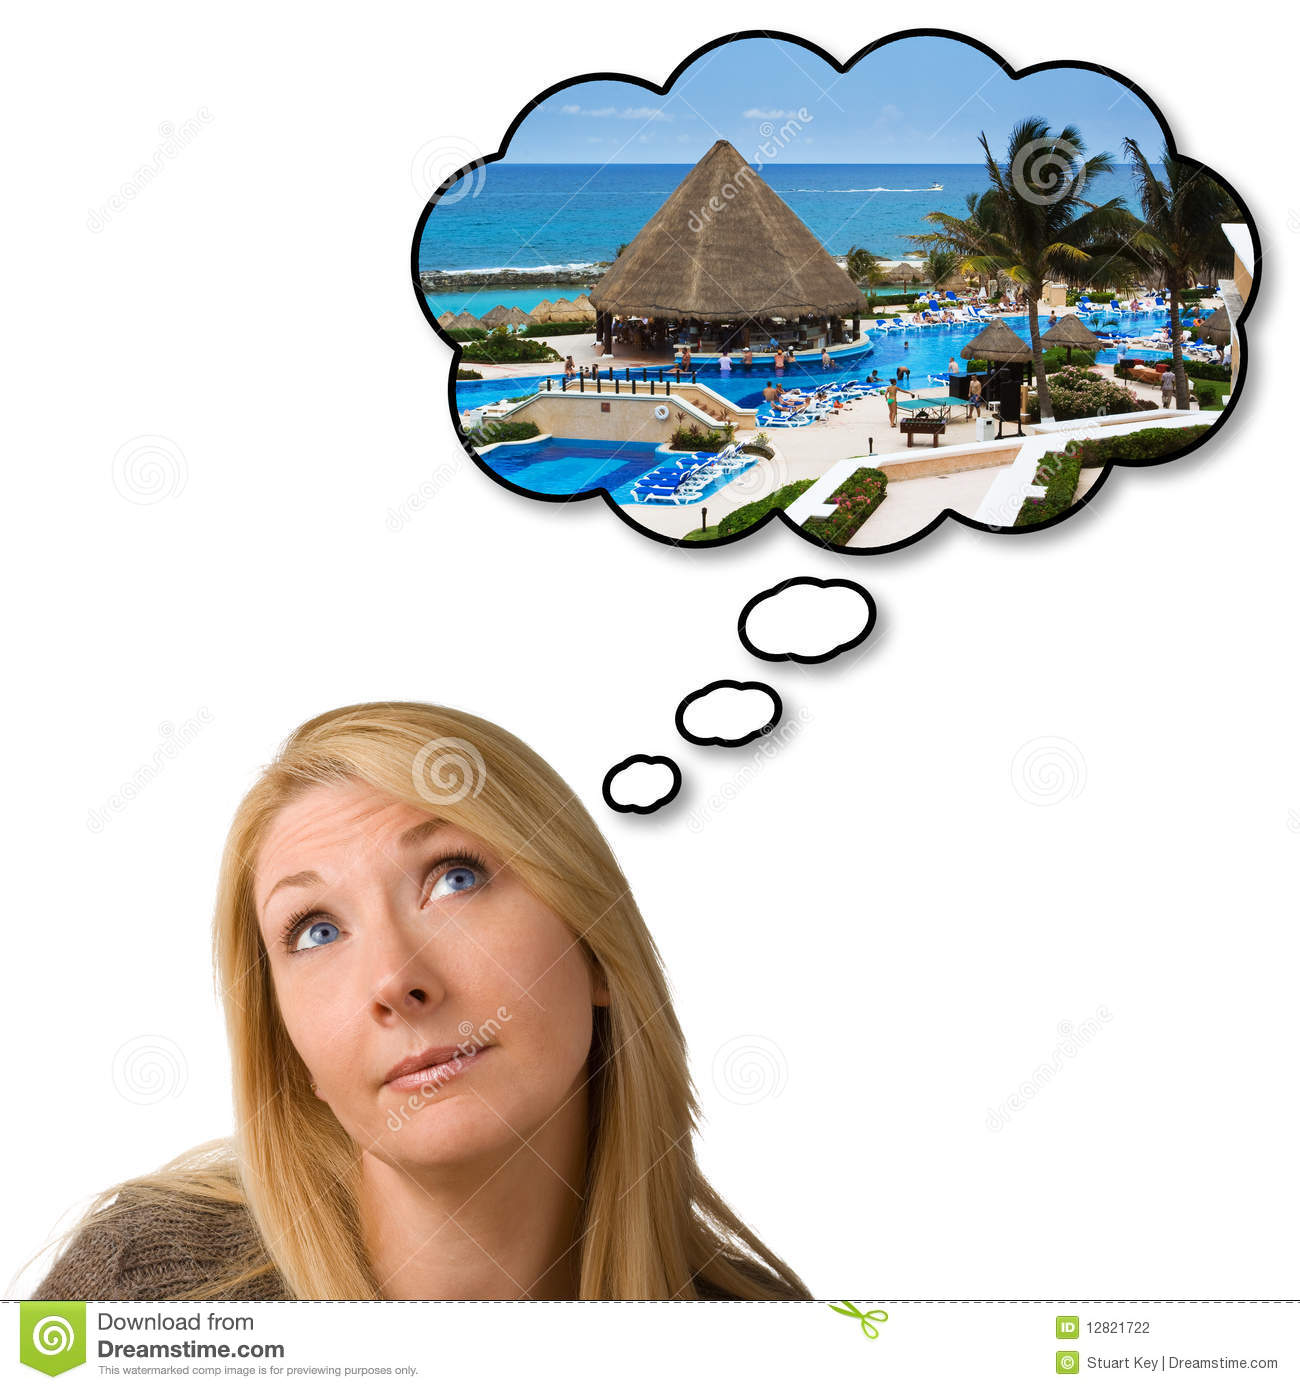 Dream vacation clipart.